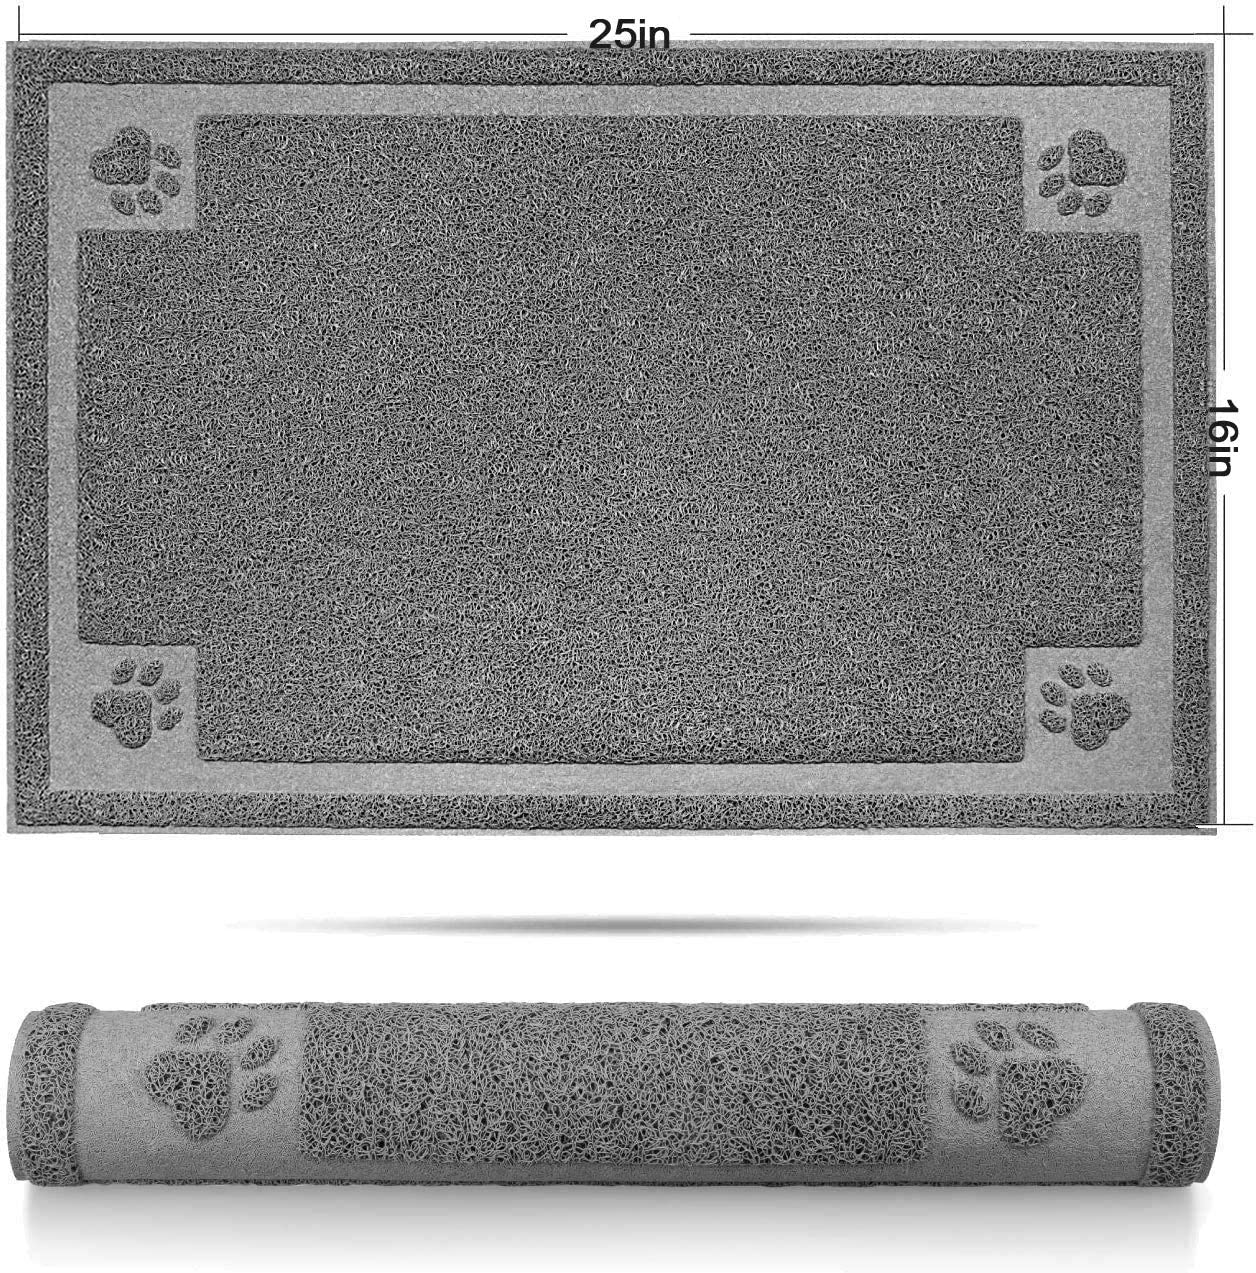 SHUNAI supreme Pet Feeding Mat for Dogs and Cats Large Colorado Springs Mall Extra Flexible an